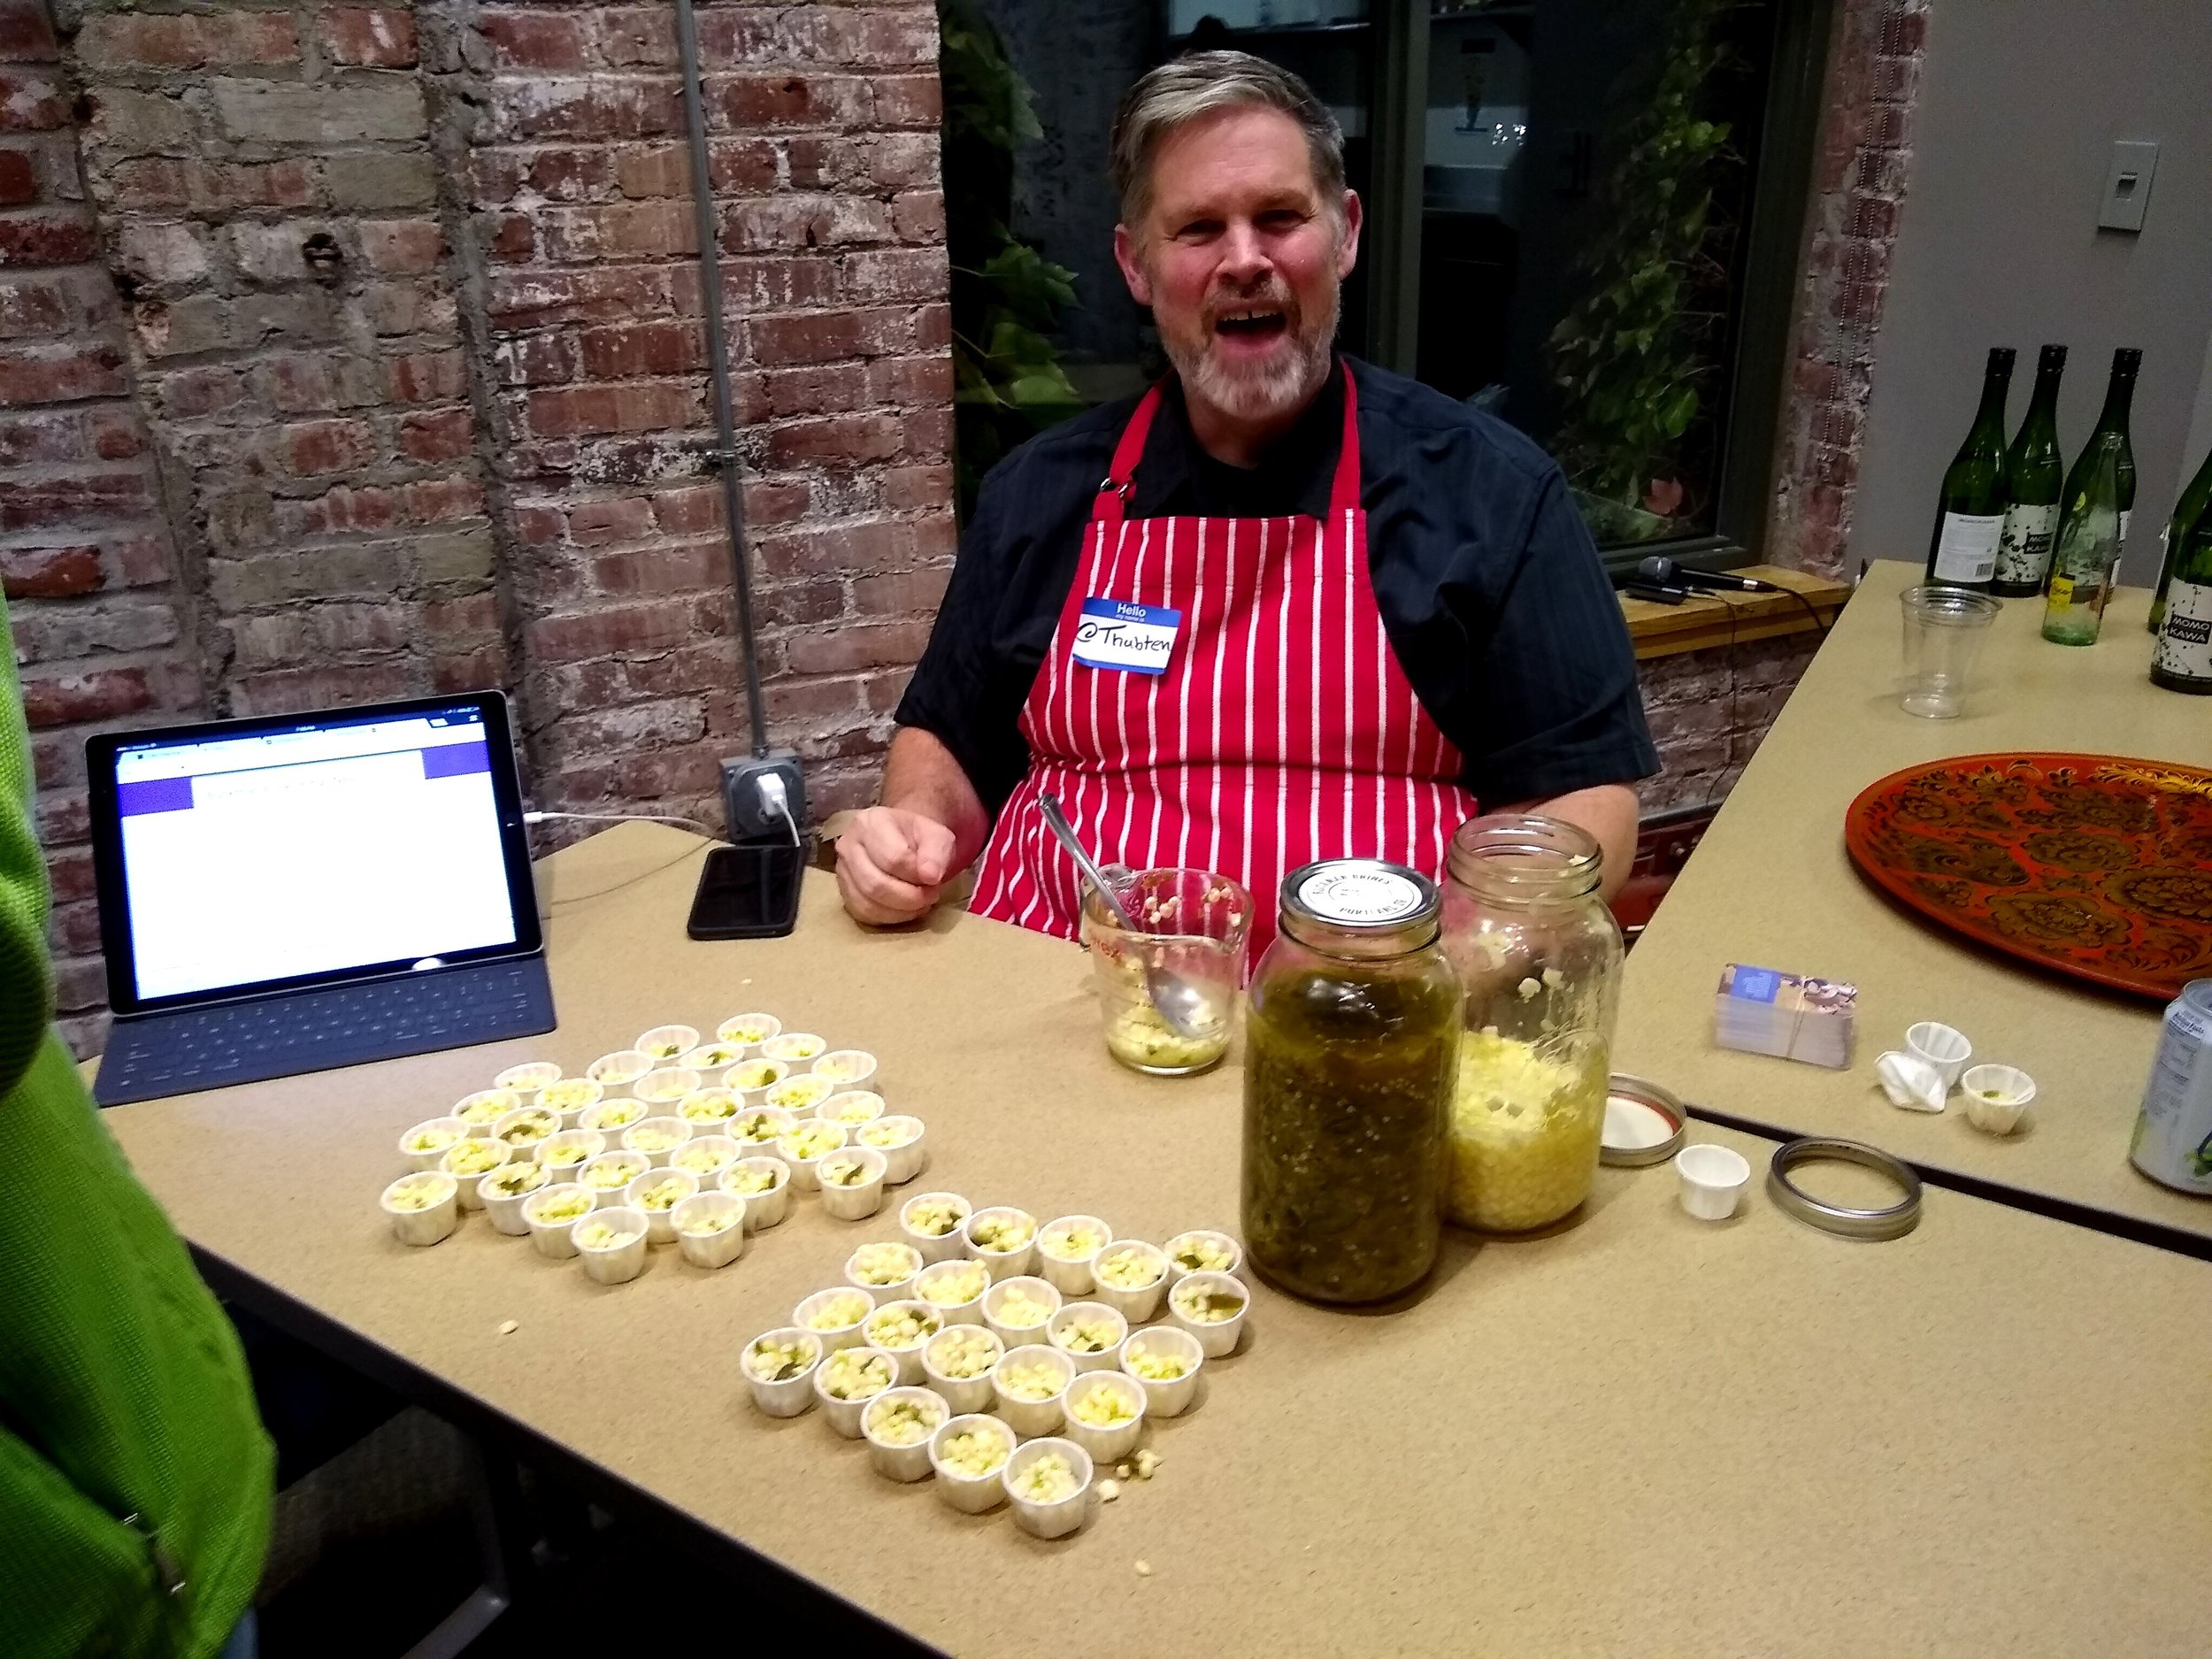 We love Thubten Comerford. He has exhibited at our past few festivals and his Buckman Brines ferments are so tasty! This year he brought fermented corn and chile and people couldn't get enough of it. Including me!